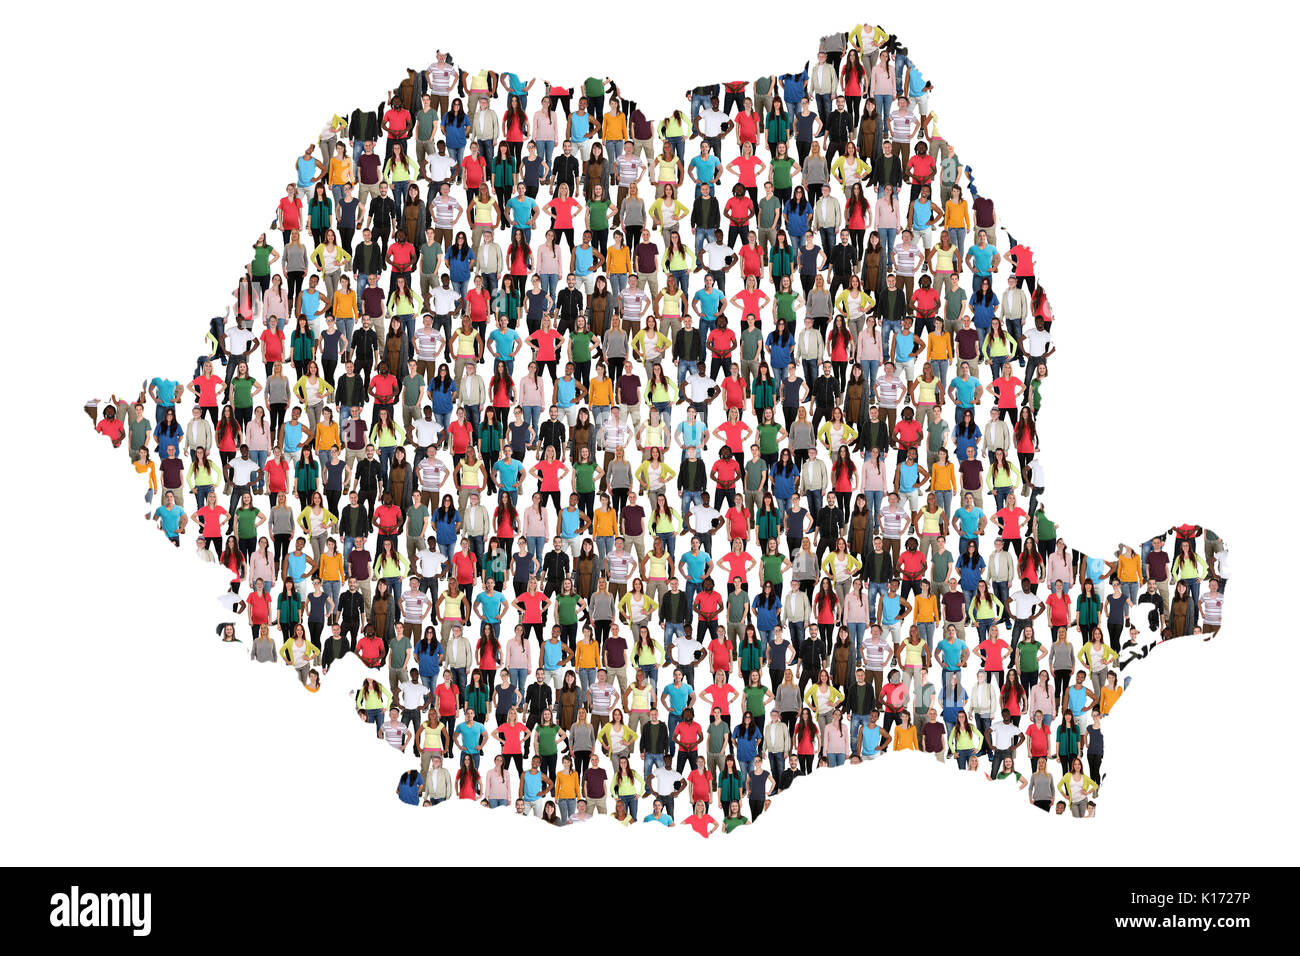 Romania map multicultural group of people integration immigration diversity isolated - Stock Image